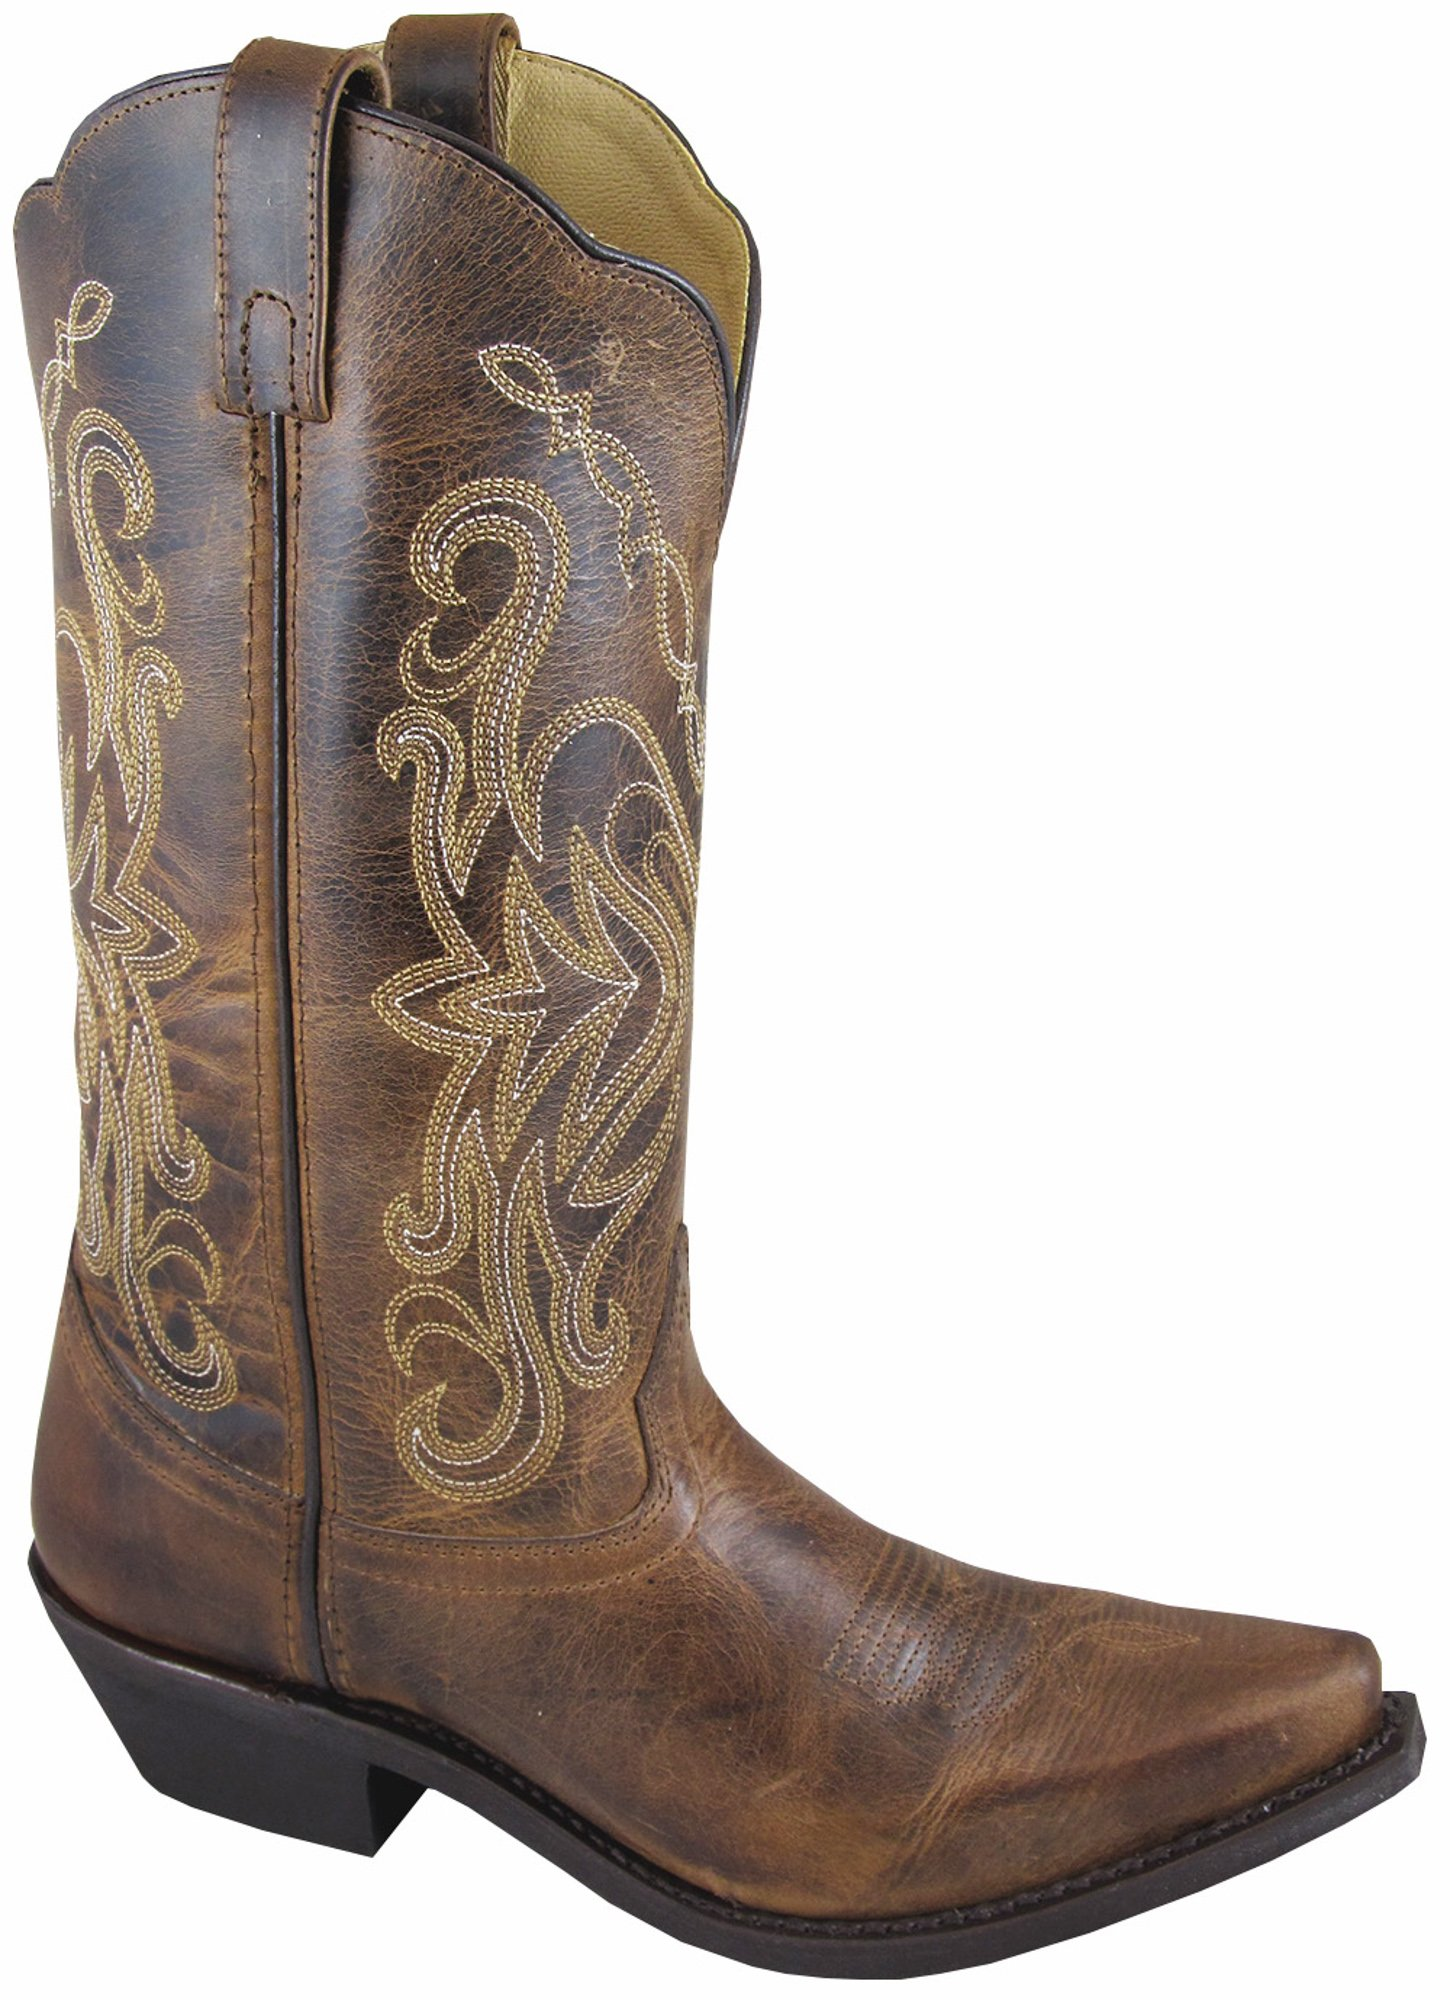 Smoky Mountain Boots Western Distressed